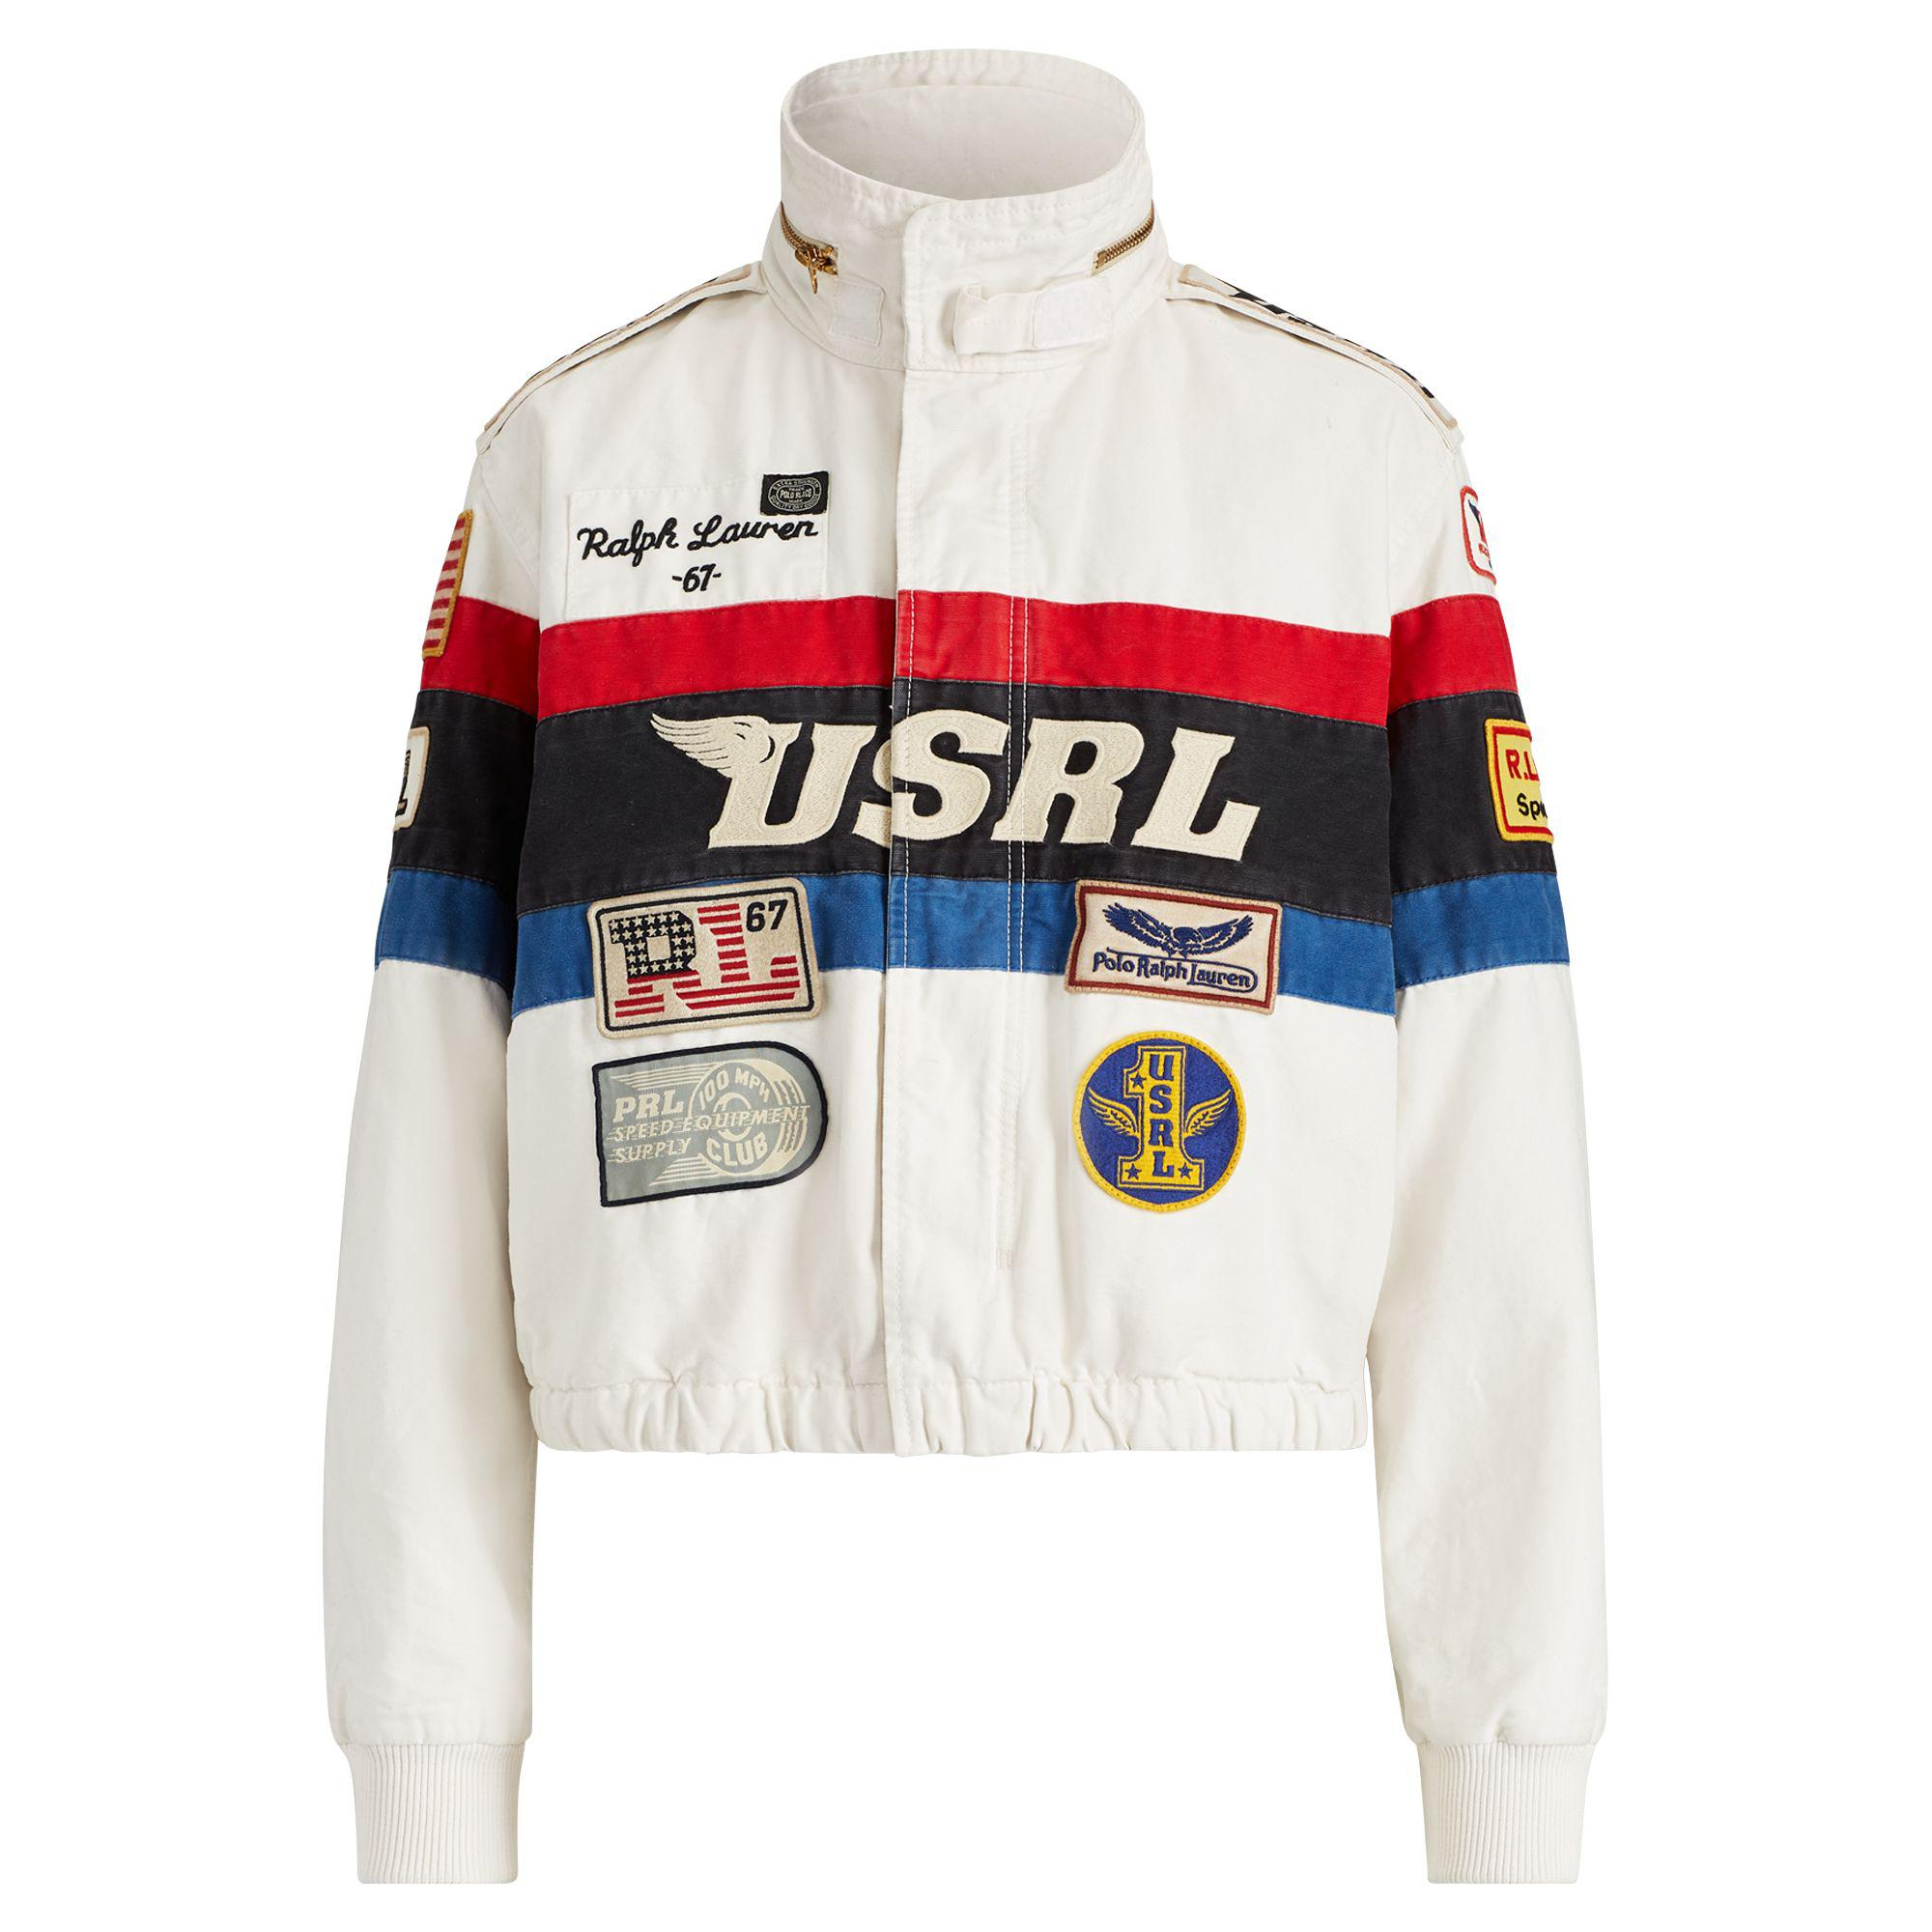 009a771742ce Polo Ralph Lauren - Multicolor Canvas Racing Jacket - Lyst. View fullscreen